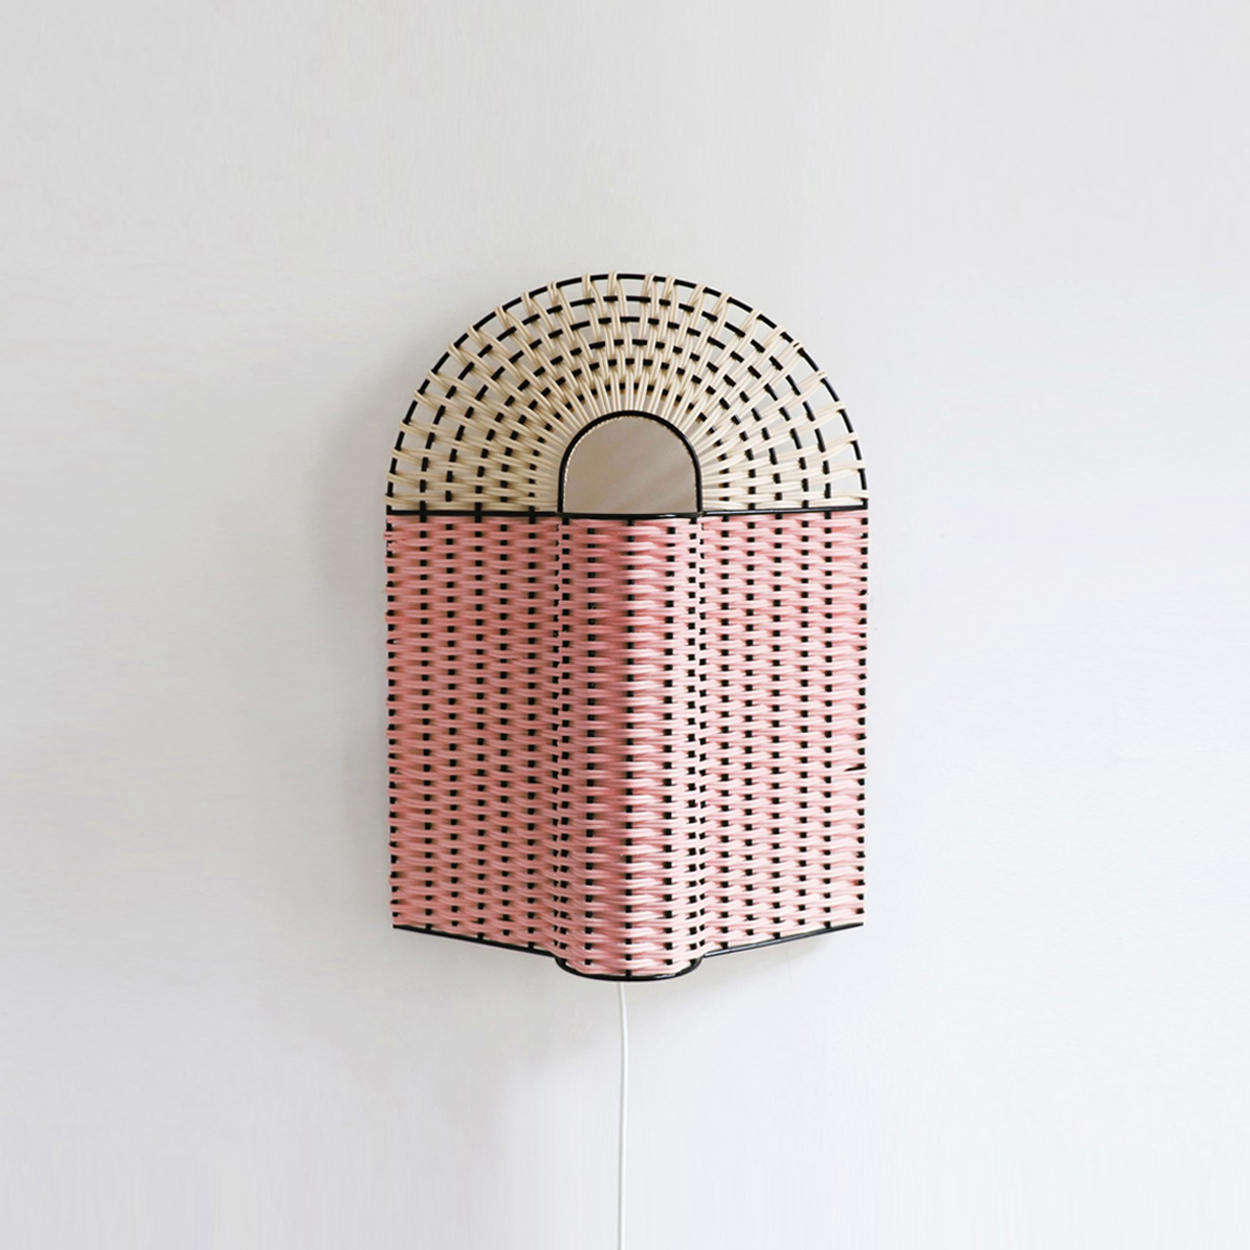 The Paon Medium Lamp in Pink and Natural is €335.